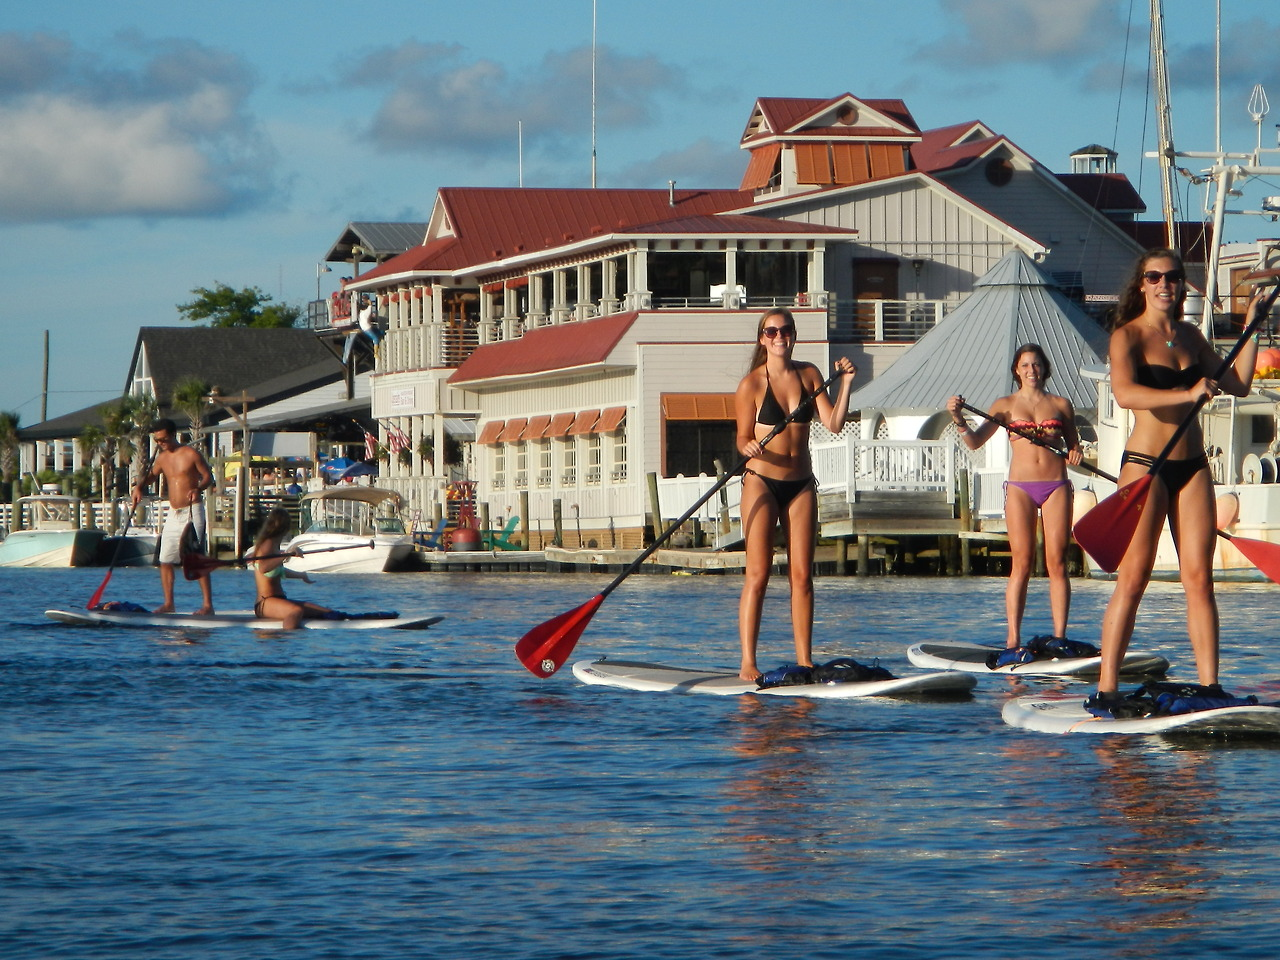 Paddleboarding Shem Creek Things To Do With Teens